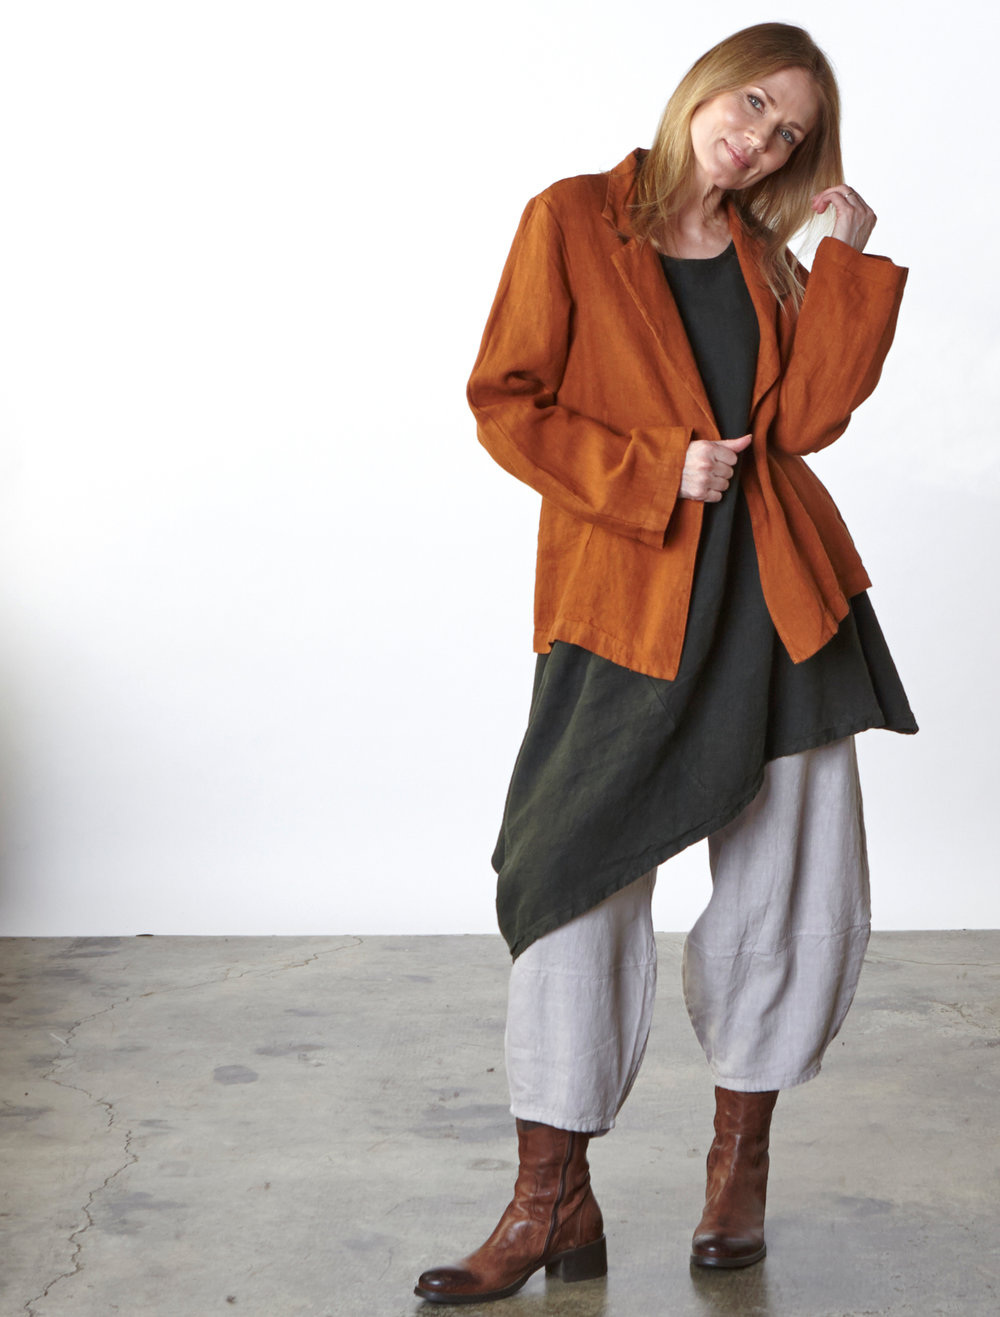 Marcel Jacket in Jemez, Nada Tunic in Huntress, Oliver Pant in Daikon Heavy Linen